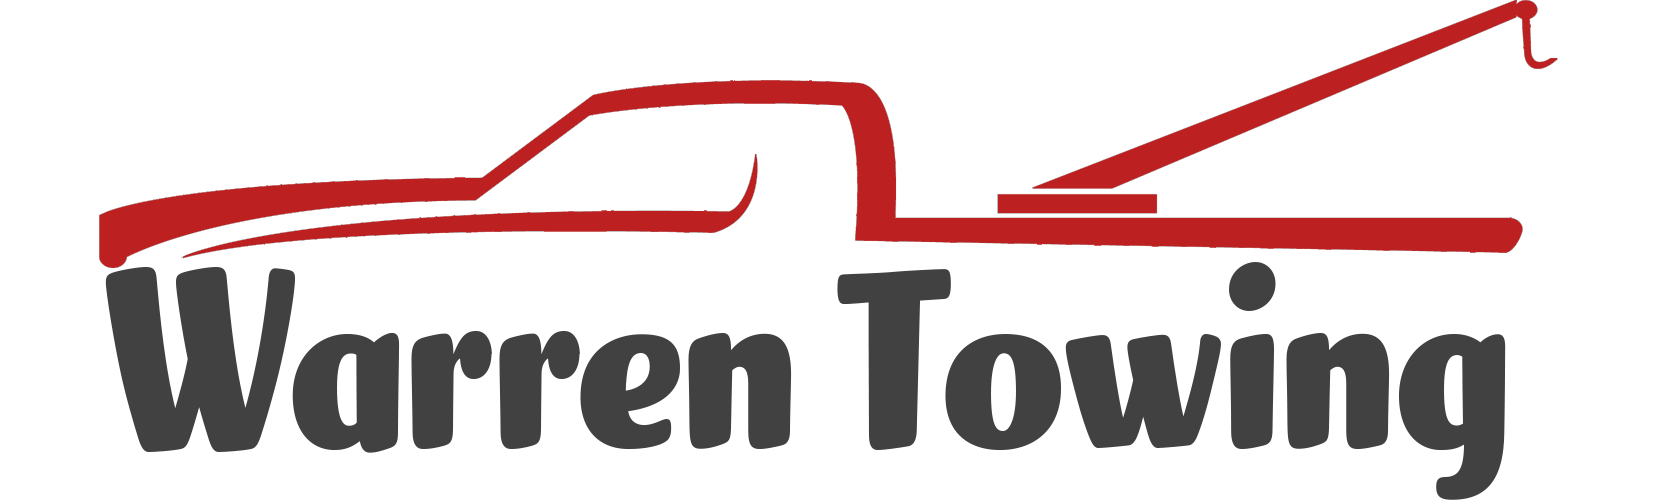 Warren Towing Service